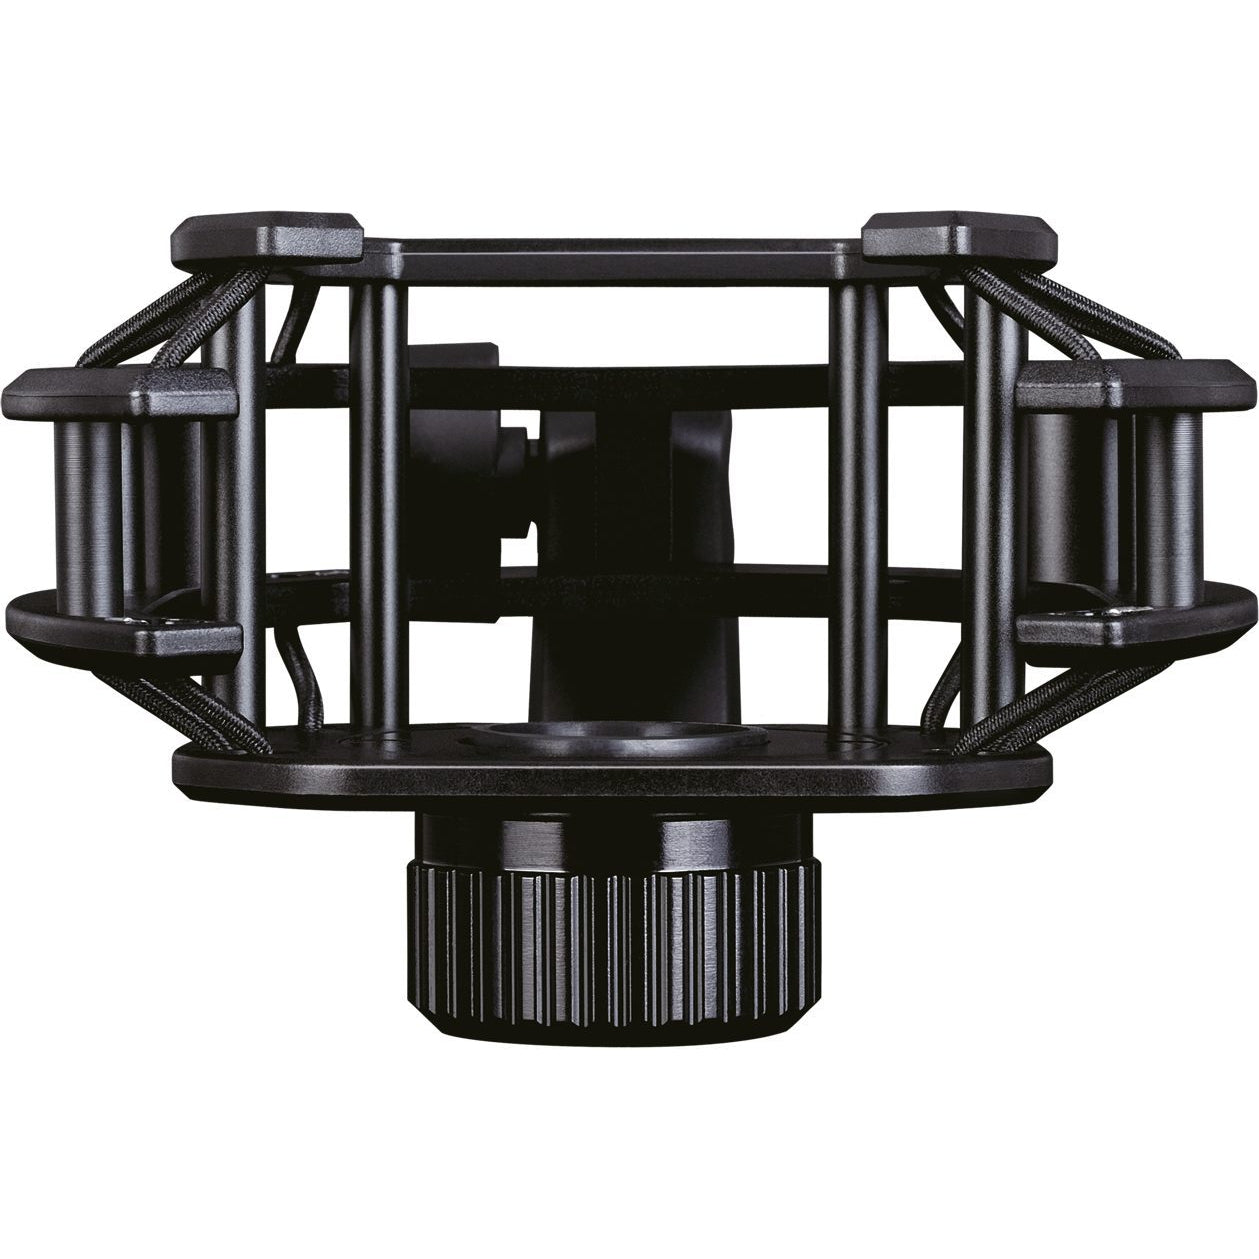 Lewitt LCT-40 SH Microphone Shockmount for LCT240